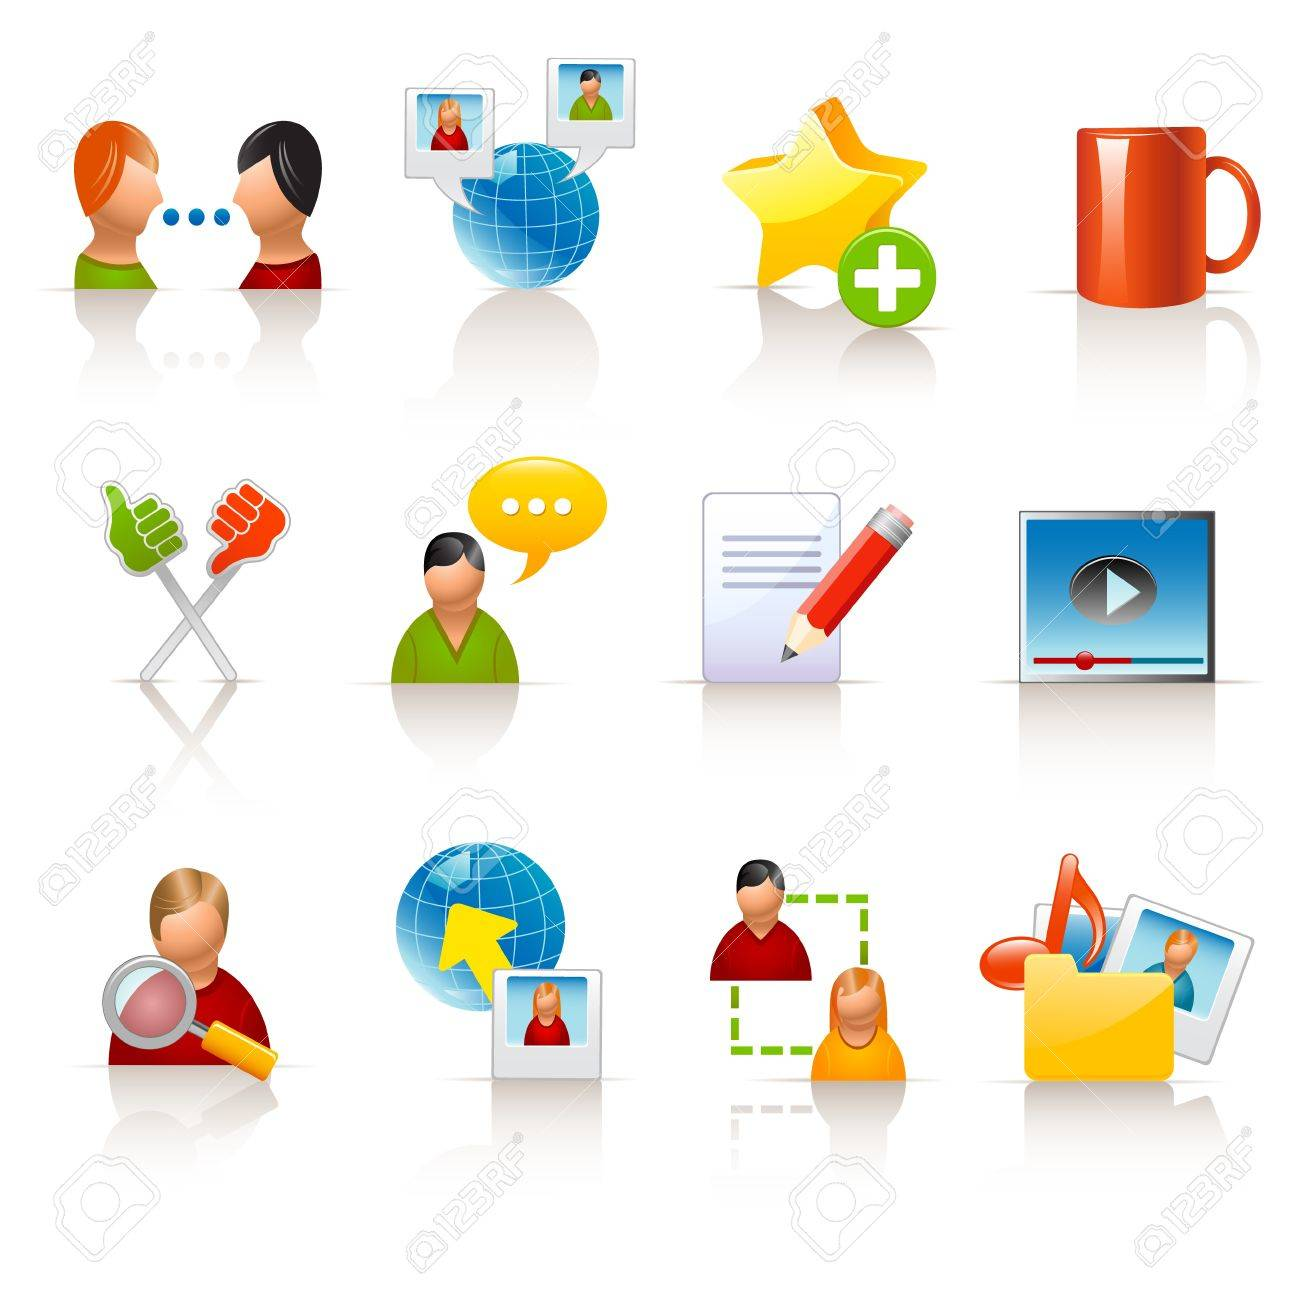 social media icons Stock Vector - 12489378